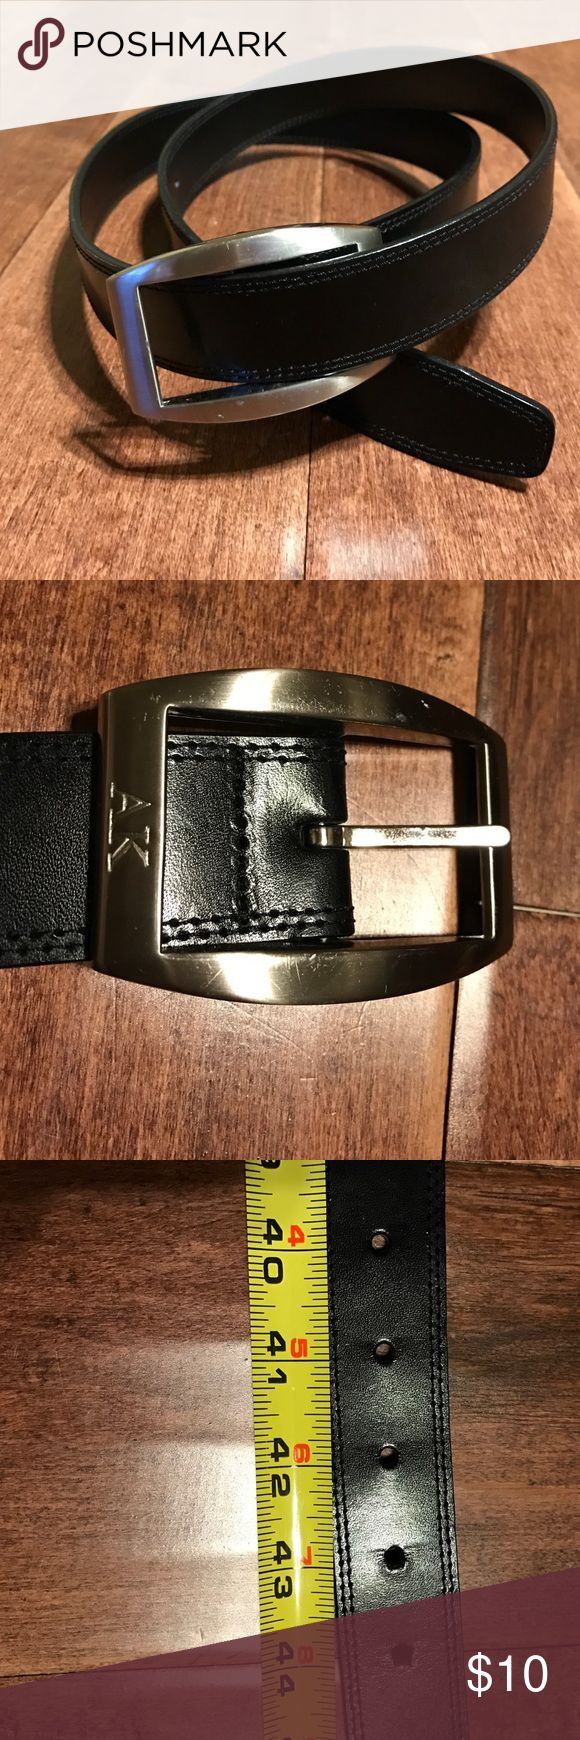 Anne Klein XL Bonded leather, great used condition, no cracking or peeling Anne Klein Accessories Belts